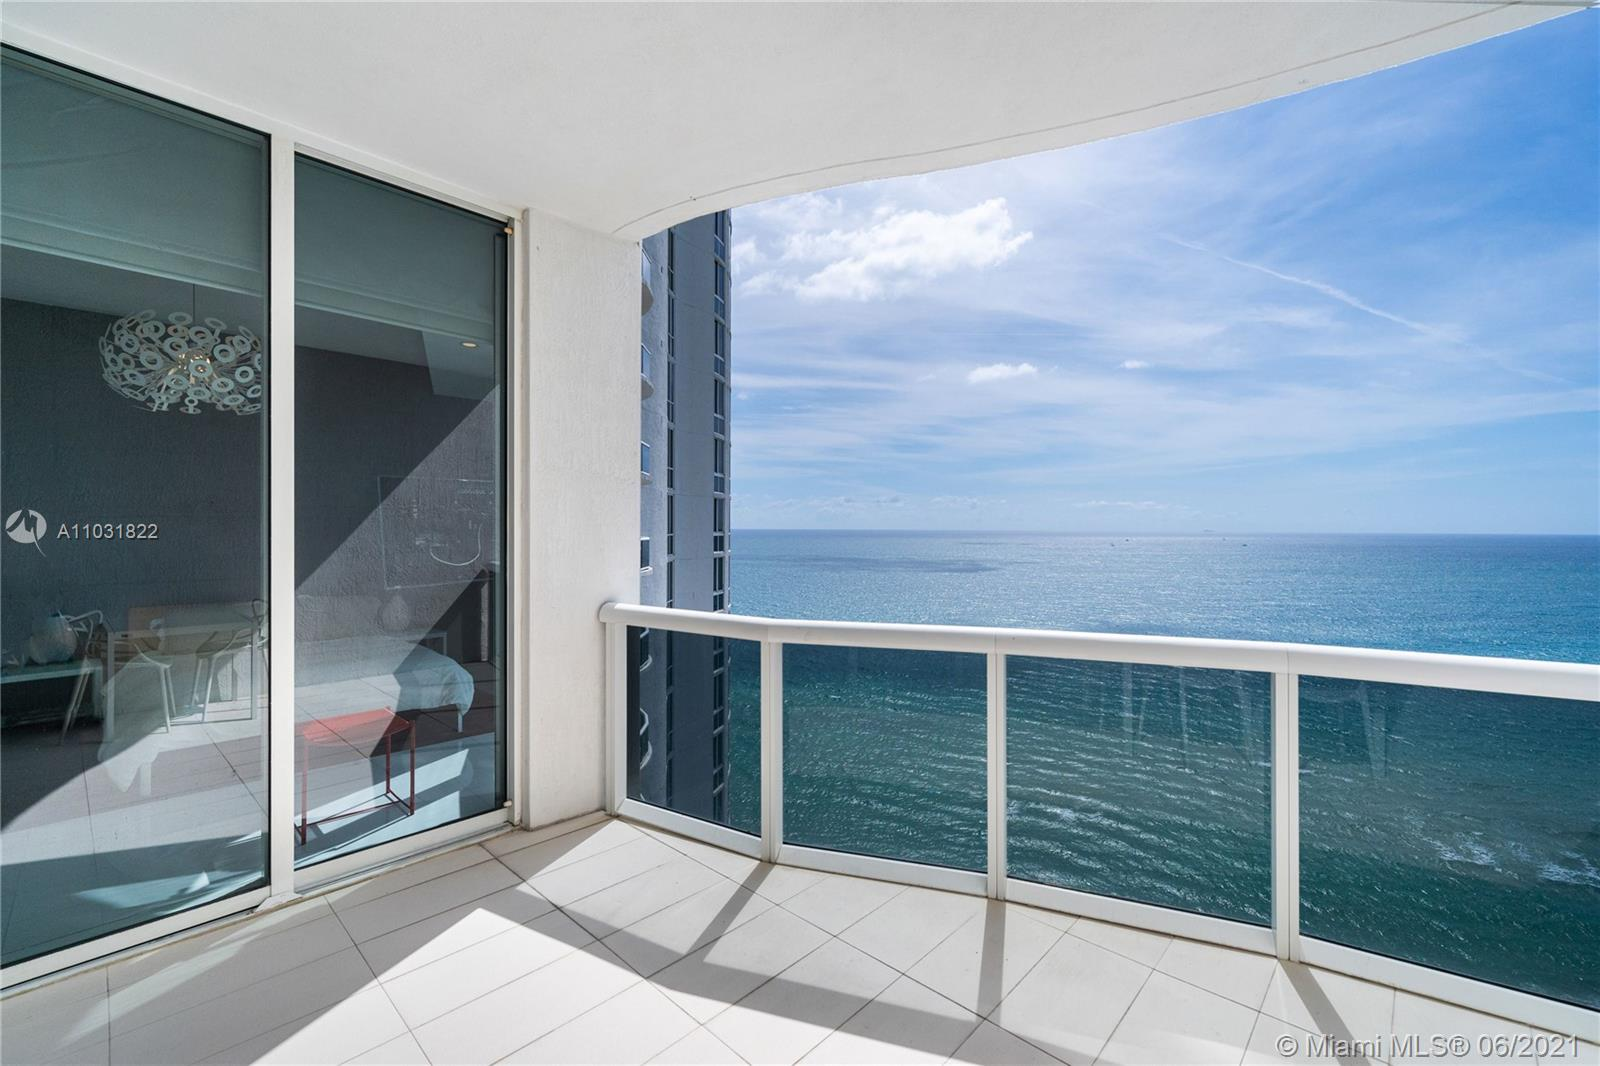 Come see  2006  this magnificent Jewel, fabulous decor, elegantly appointed,  Over 10ft. ceilings with direct ocean & intracoastal views  floor to ceiling windows, this flow through residence gets warm natural sunlight from sunrise to sunset, on 4 balconies,  with Miami skyline views from the master bathroom suite.   Enjoy many amenities in this 5 star luxurious tower,  Full spa gym,  two level fitness center, steam & sauna, concierge services with a beach club and restaurant services.  Most desirable location, in Sunny Isle, 3 min from  Bal harbour shops, centrally located from Miami and Ft Lauderdale, Sunny isle has the most beautiful clean beaches, several parks in walking distance and many shops to walk to .  Must see this True beauty !